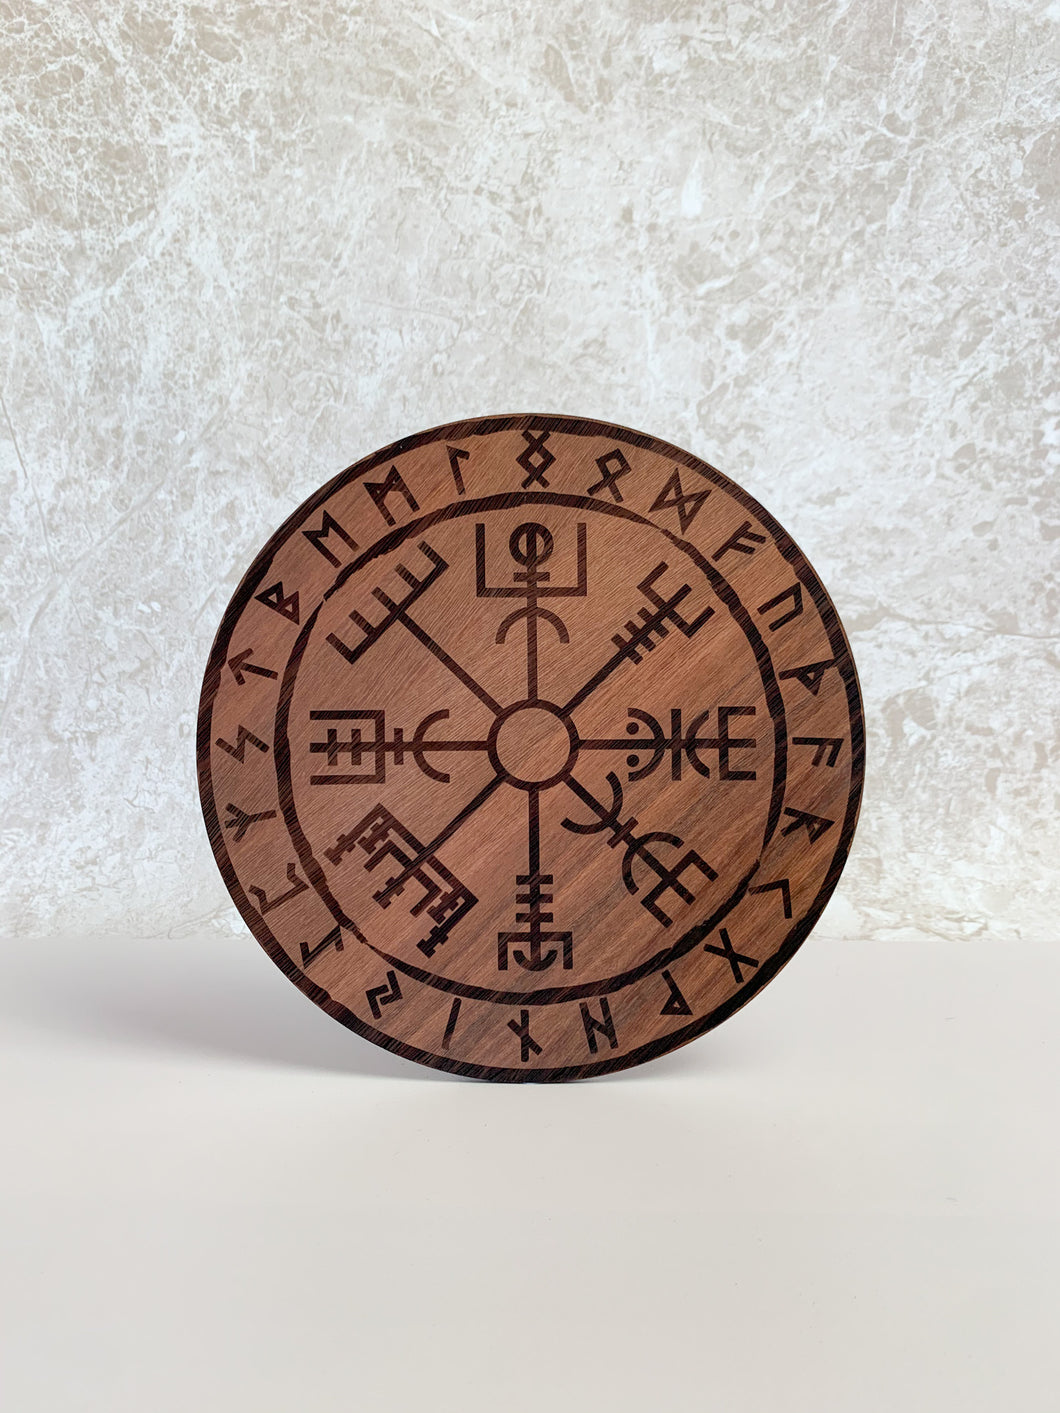 Vegvisir 'Viking Compass' By Yiska Designs - Jarrah